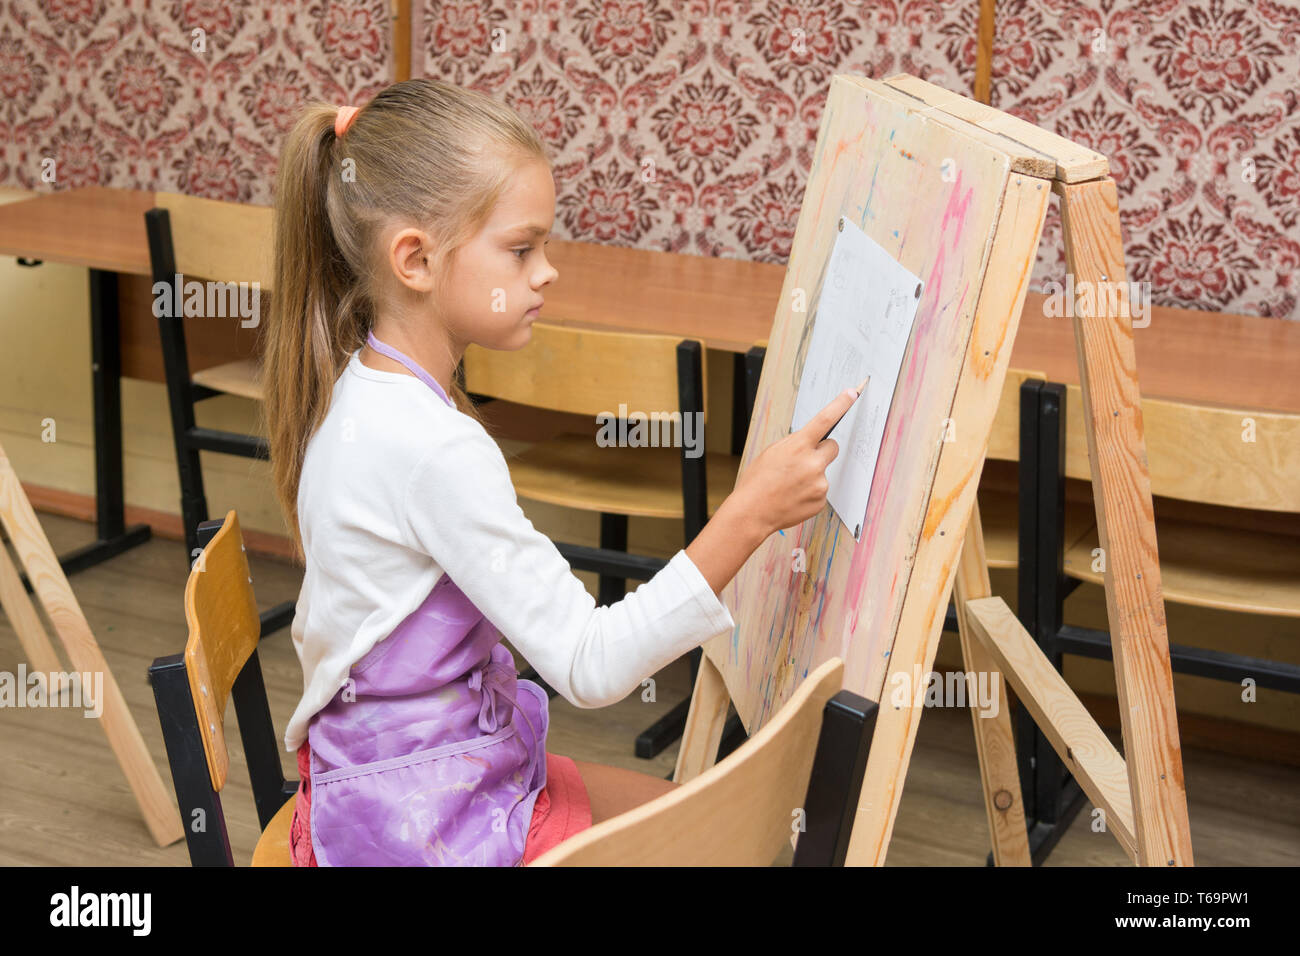 Girl artist paints on an easel to draw circle - Stock Image